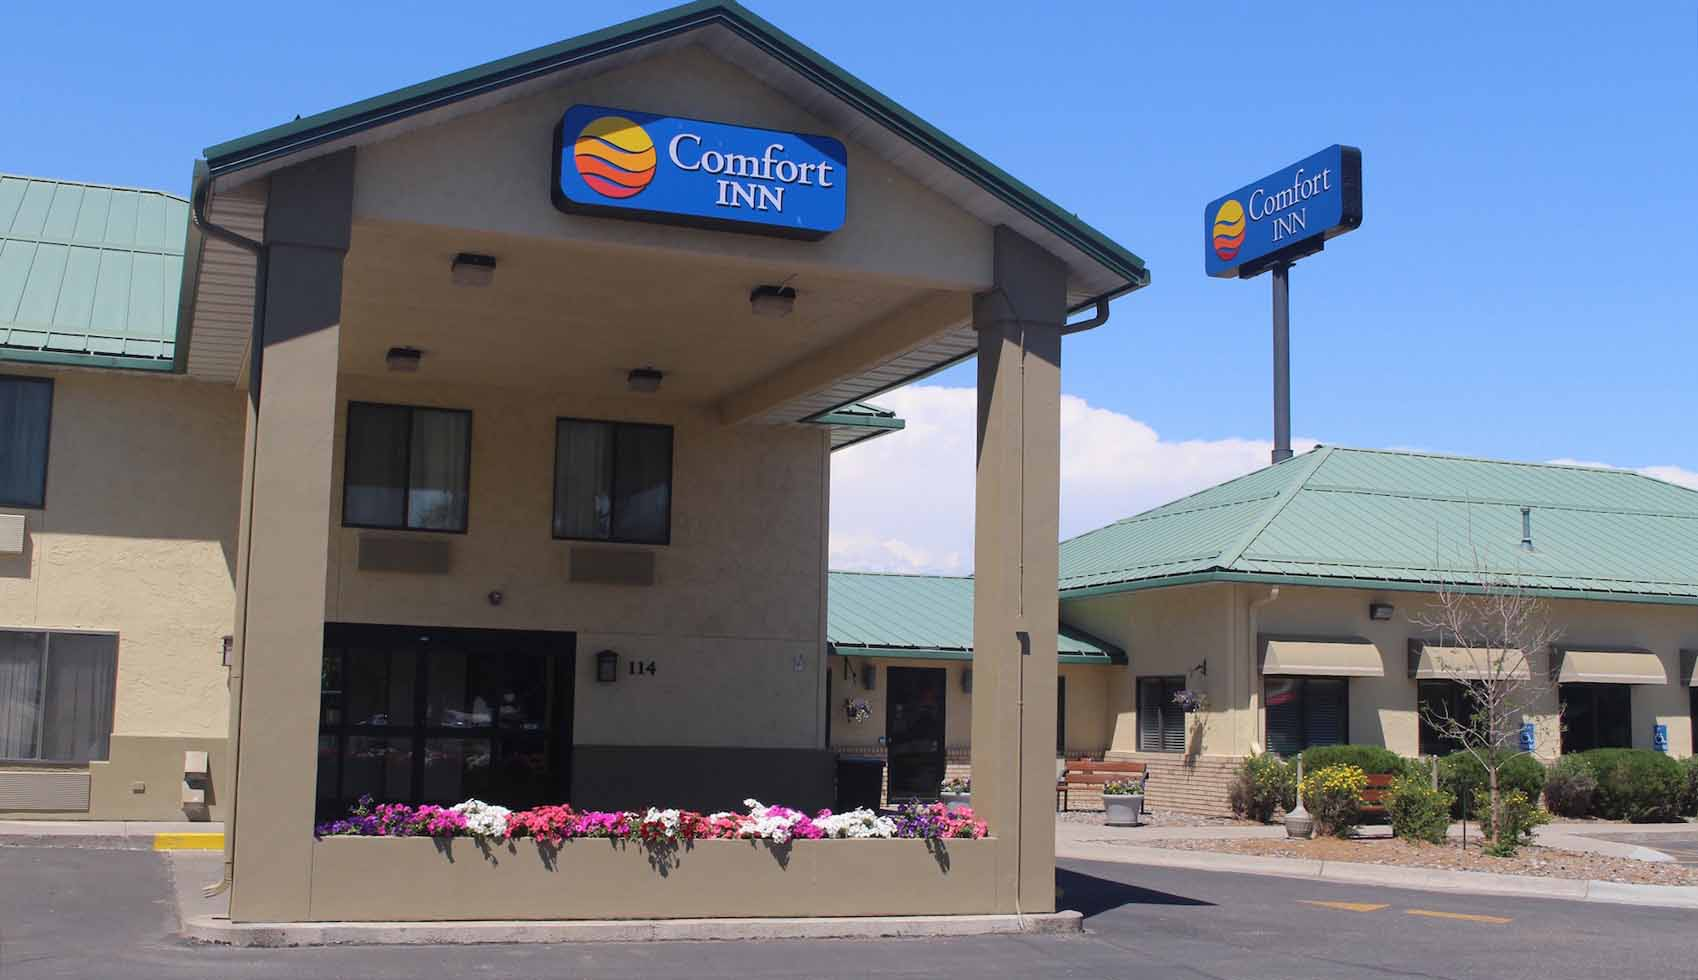 Livingston Comfort Inn profile image